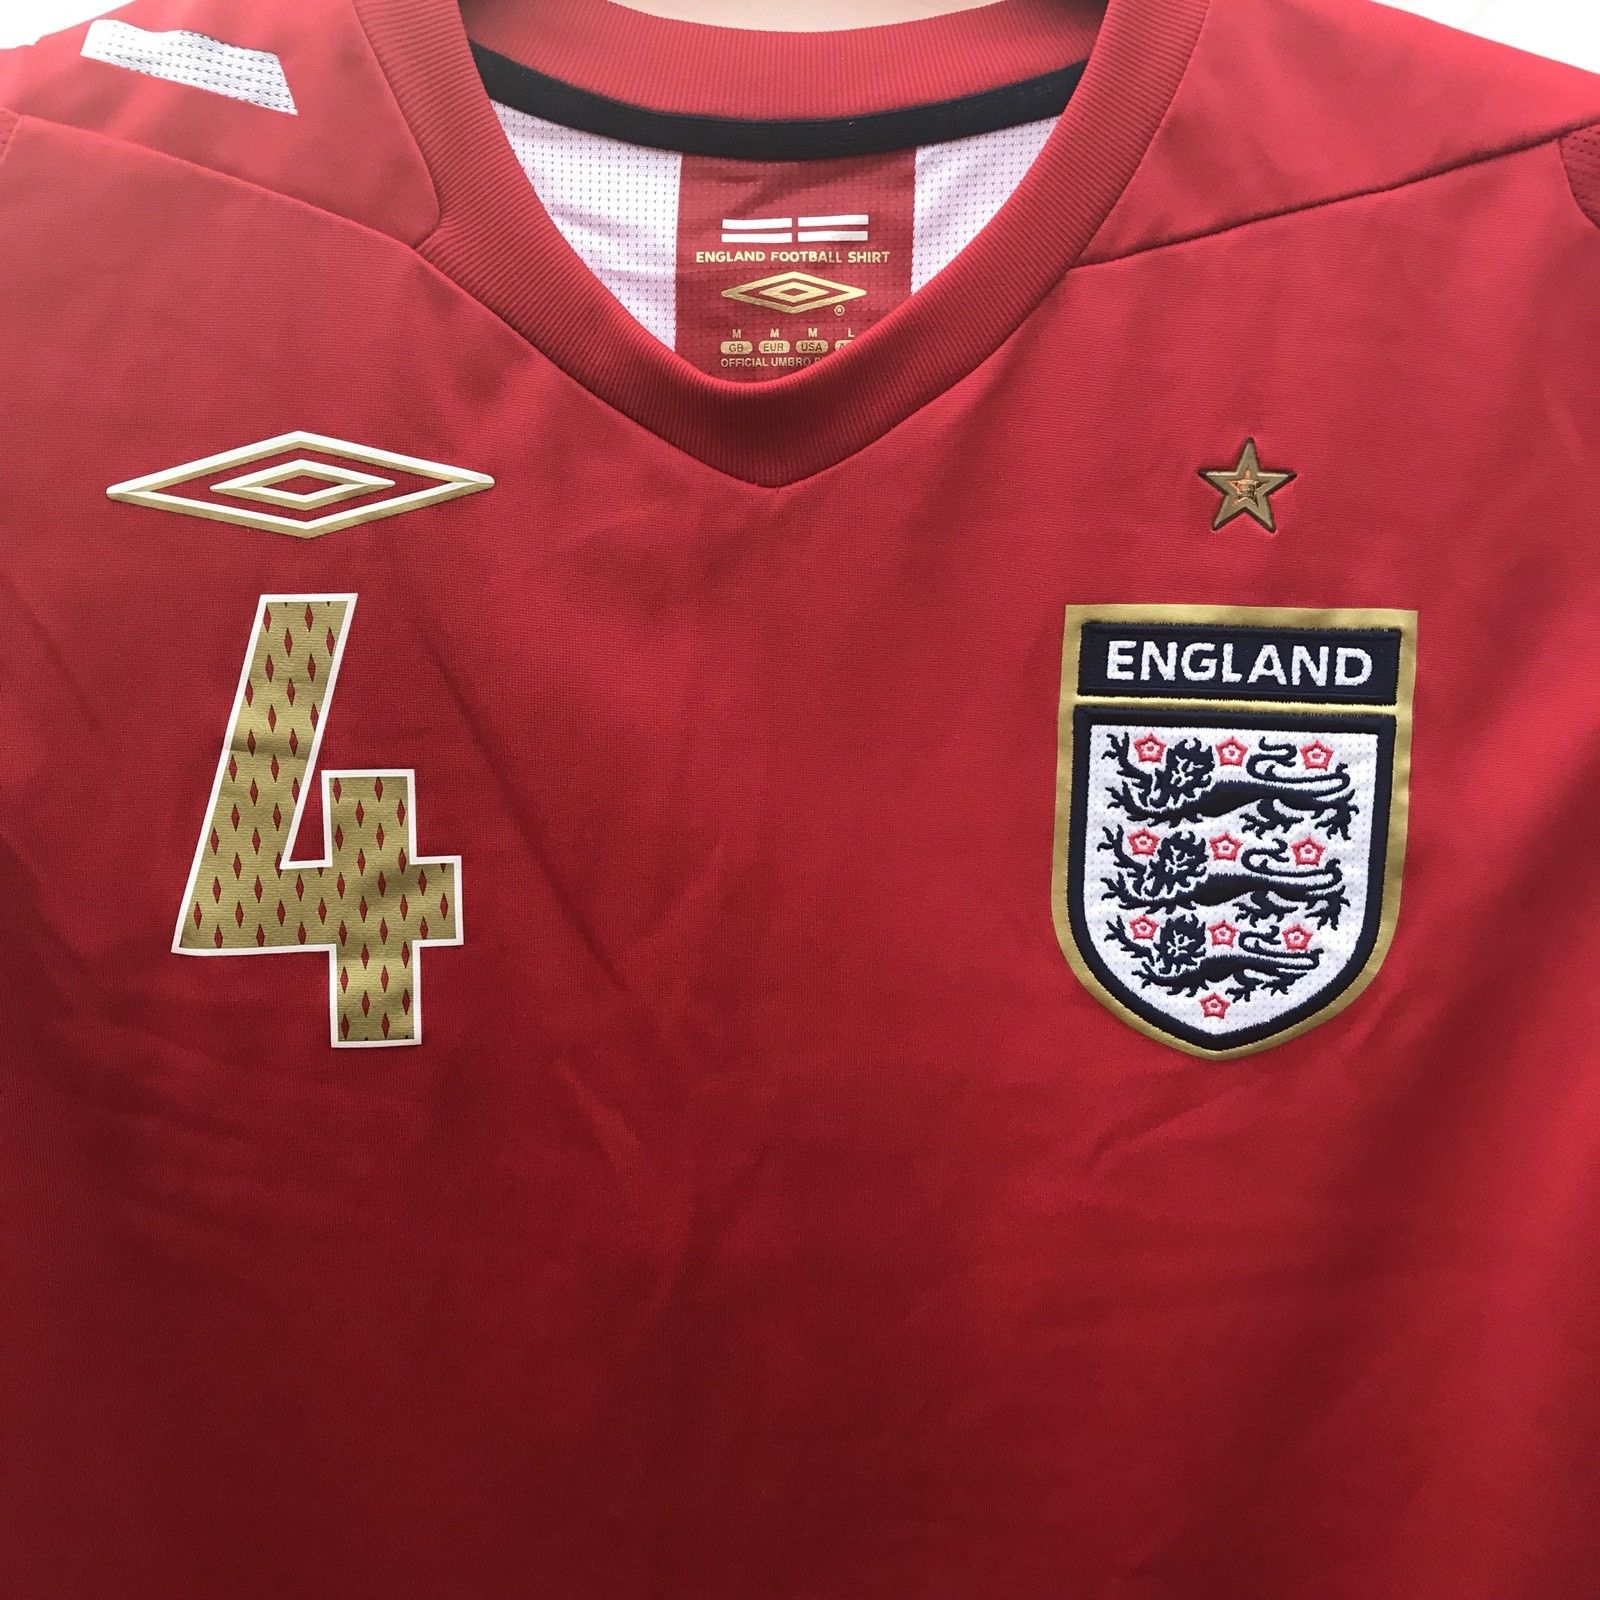 45e5037a6 England Steven Gerrard 4 Football Shirt 2006 08 Adults Medium Umbro. 🔍.  outofstock